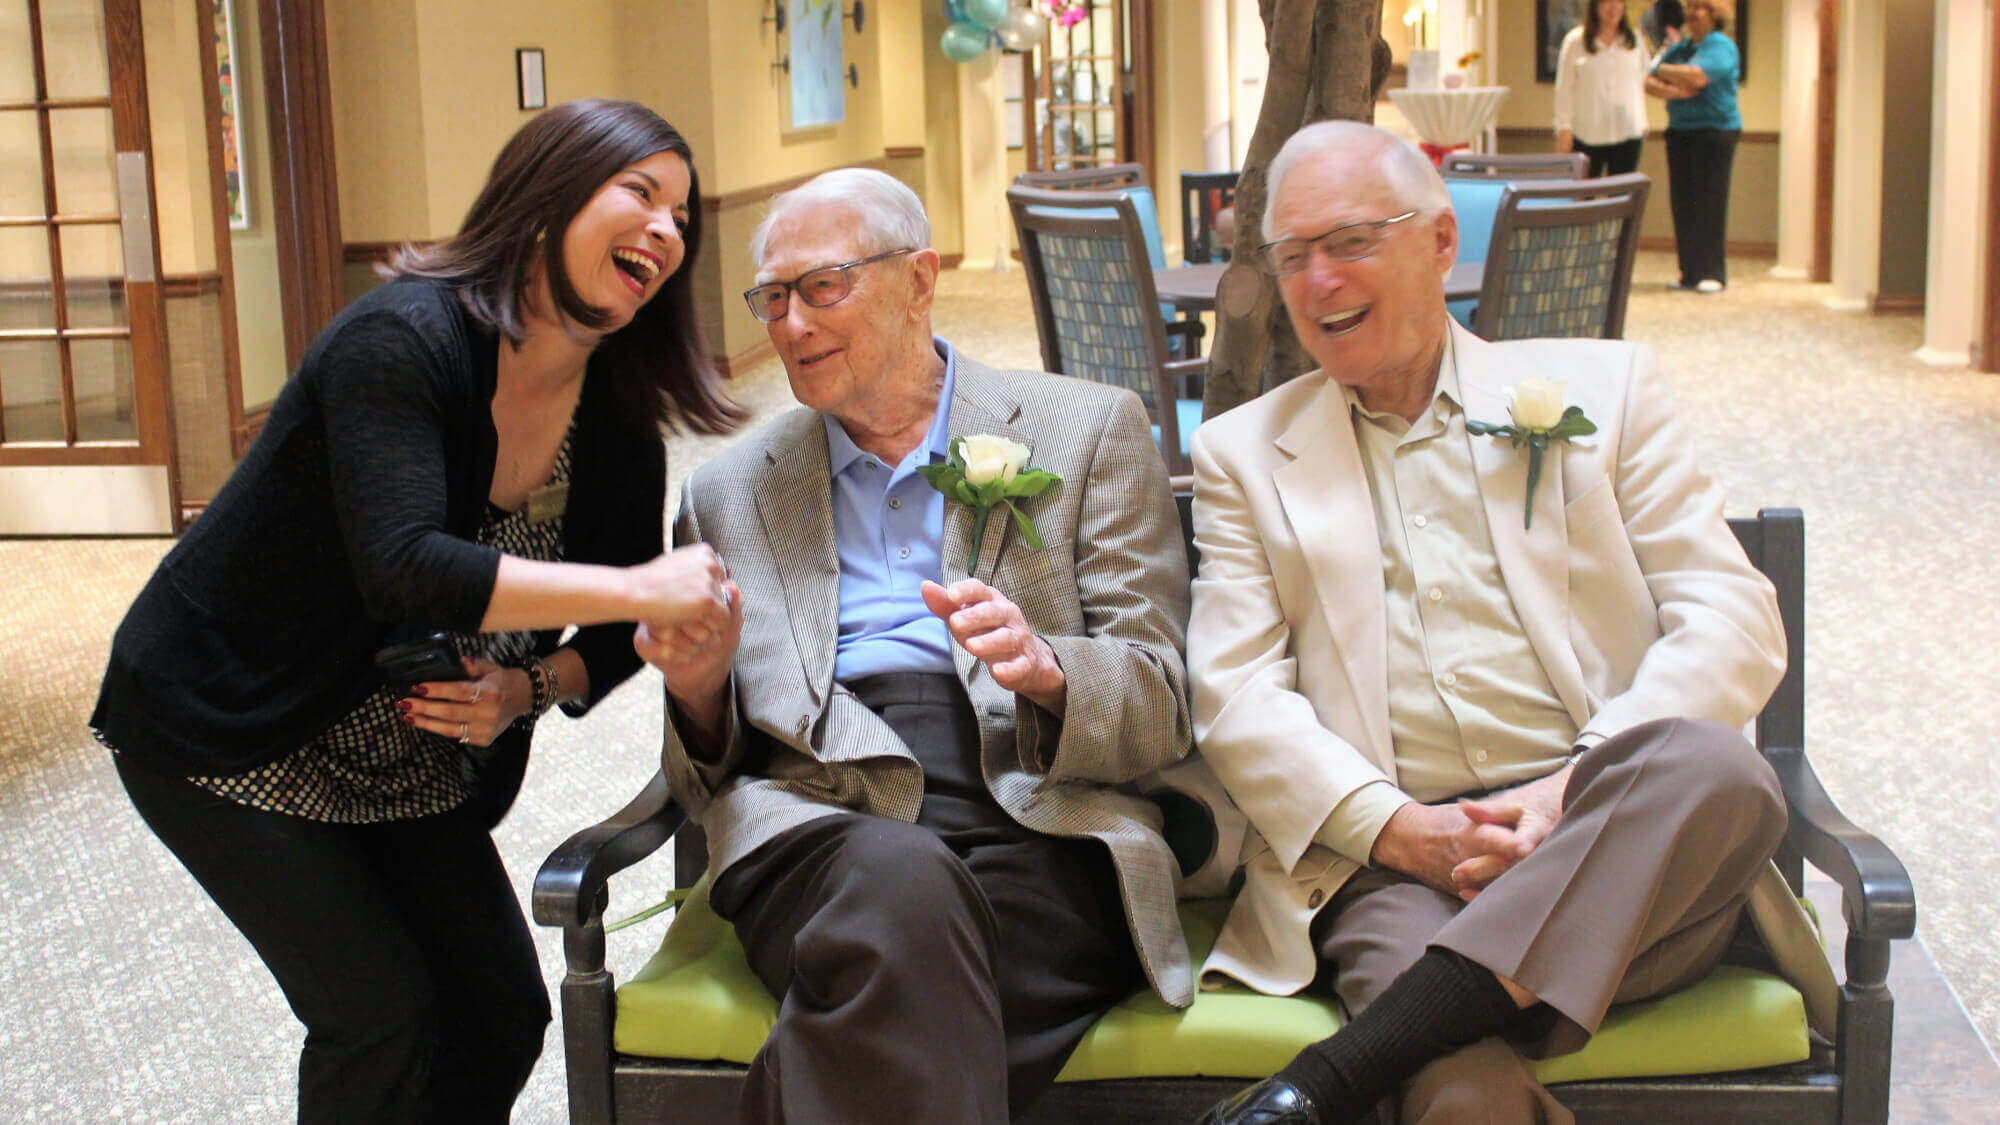 Residents share a laugh together with the Lifestyle Director on Main Street.